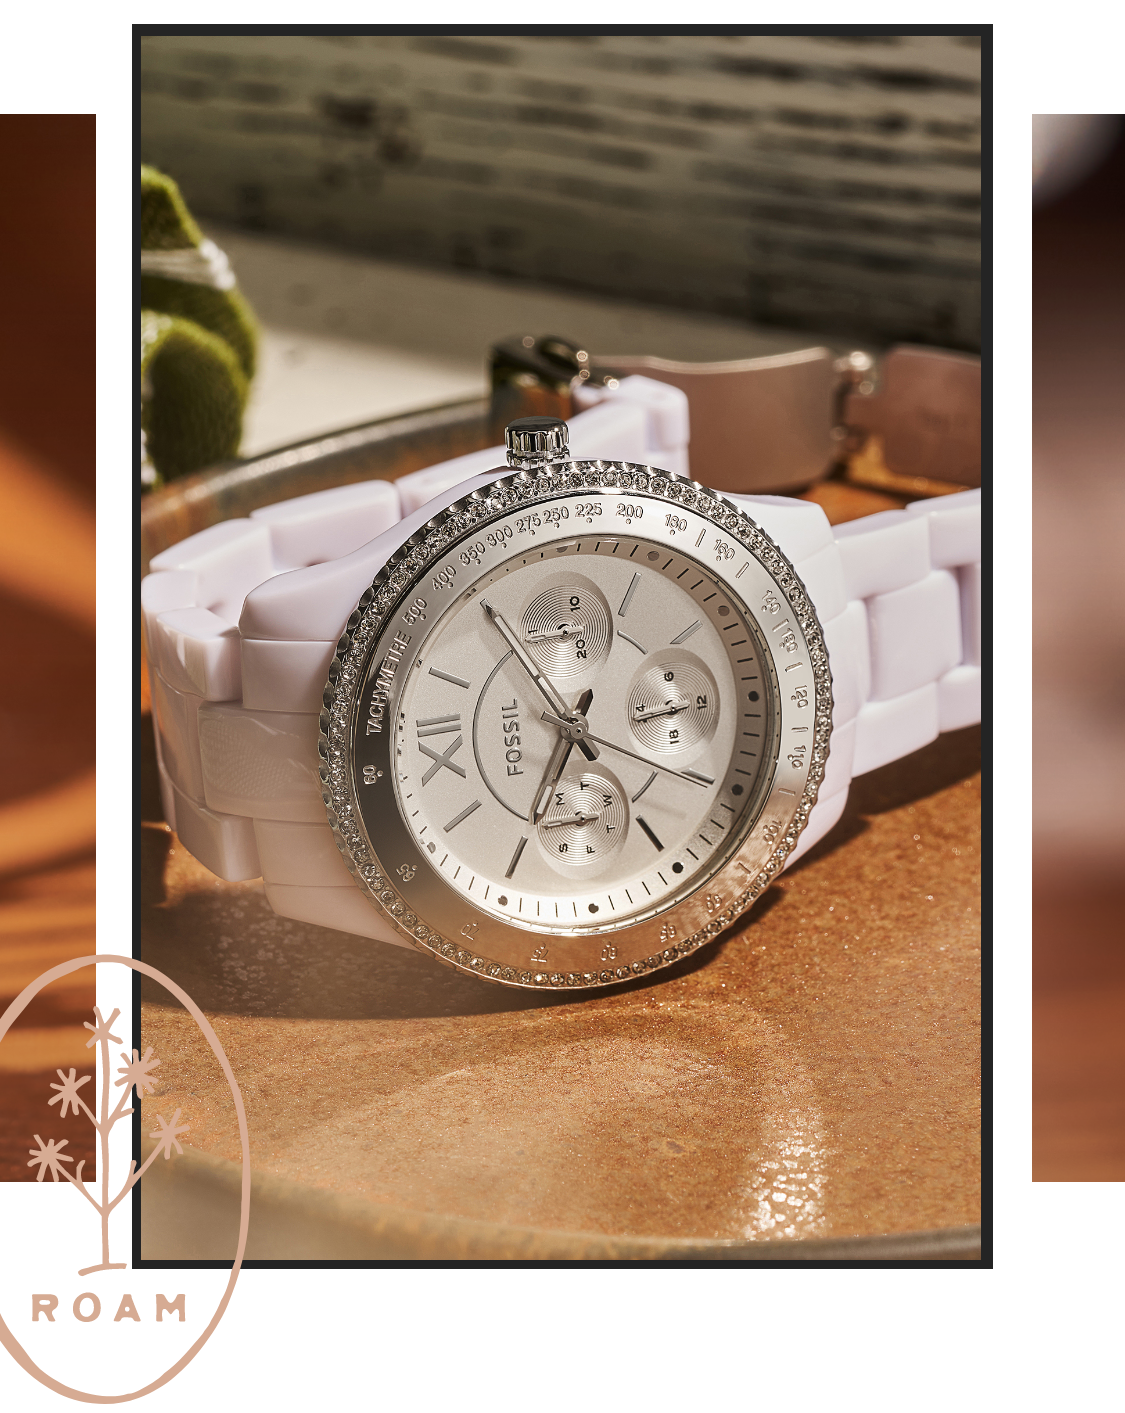 Best of the Best Stella. A video of a woman wearing a gold-tone Stella watch and an image of a gold-tone Stella watch.